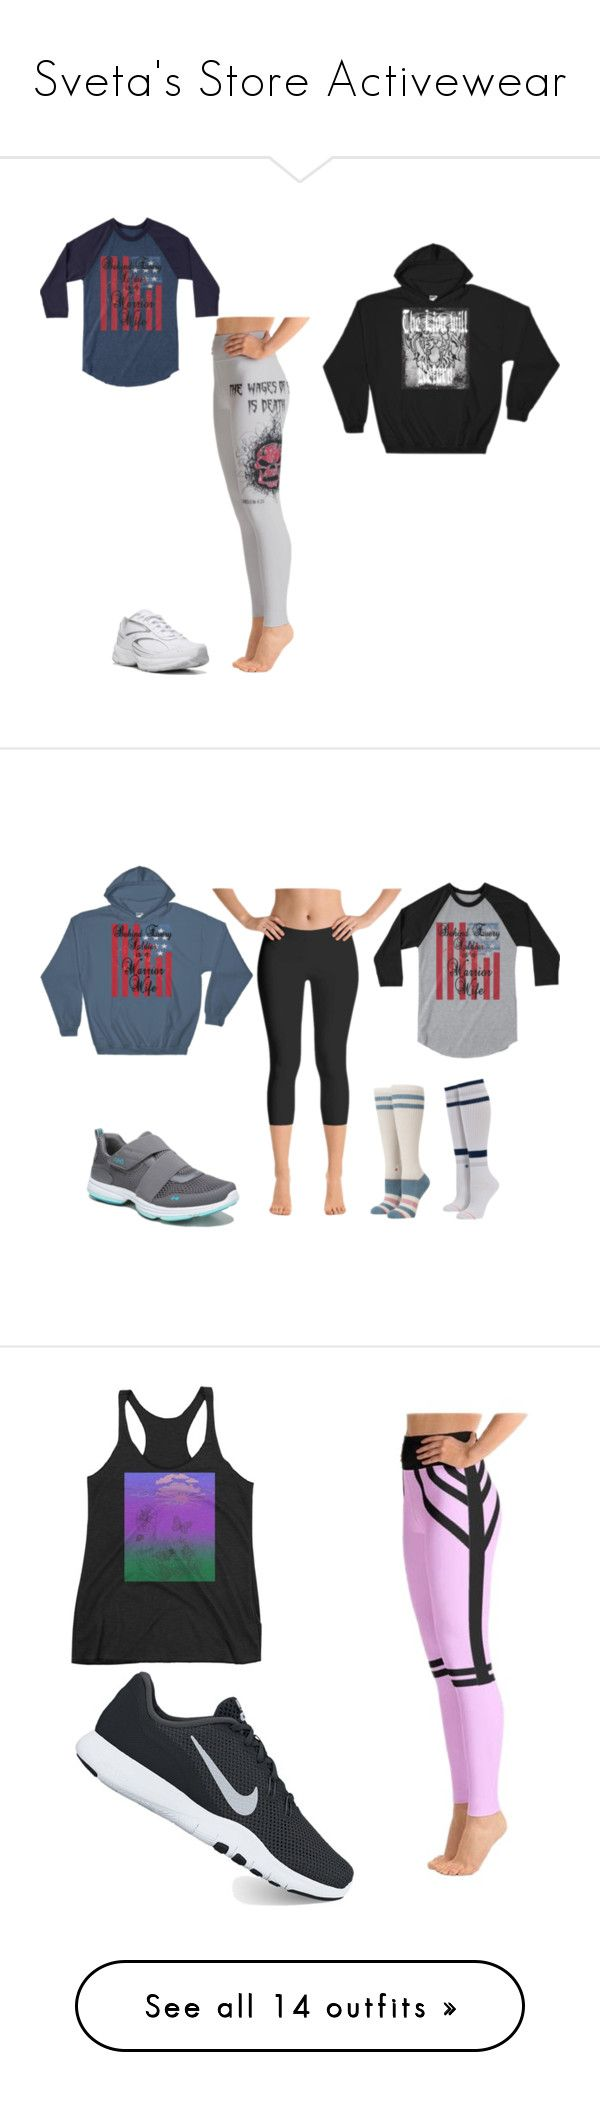 """Sveta's Store Activewear"" by svetasstore-14992183255 on Polyvore featuring Rykä, Stance, NIKE, New Balance, Altra, Pressbox, Diadora, Knixwear, Skechers and vintage"